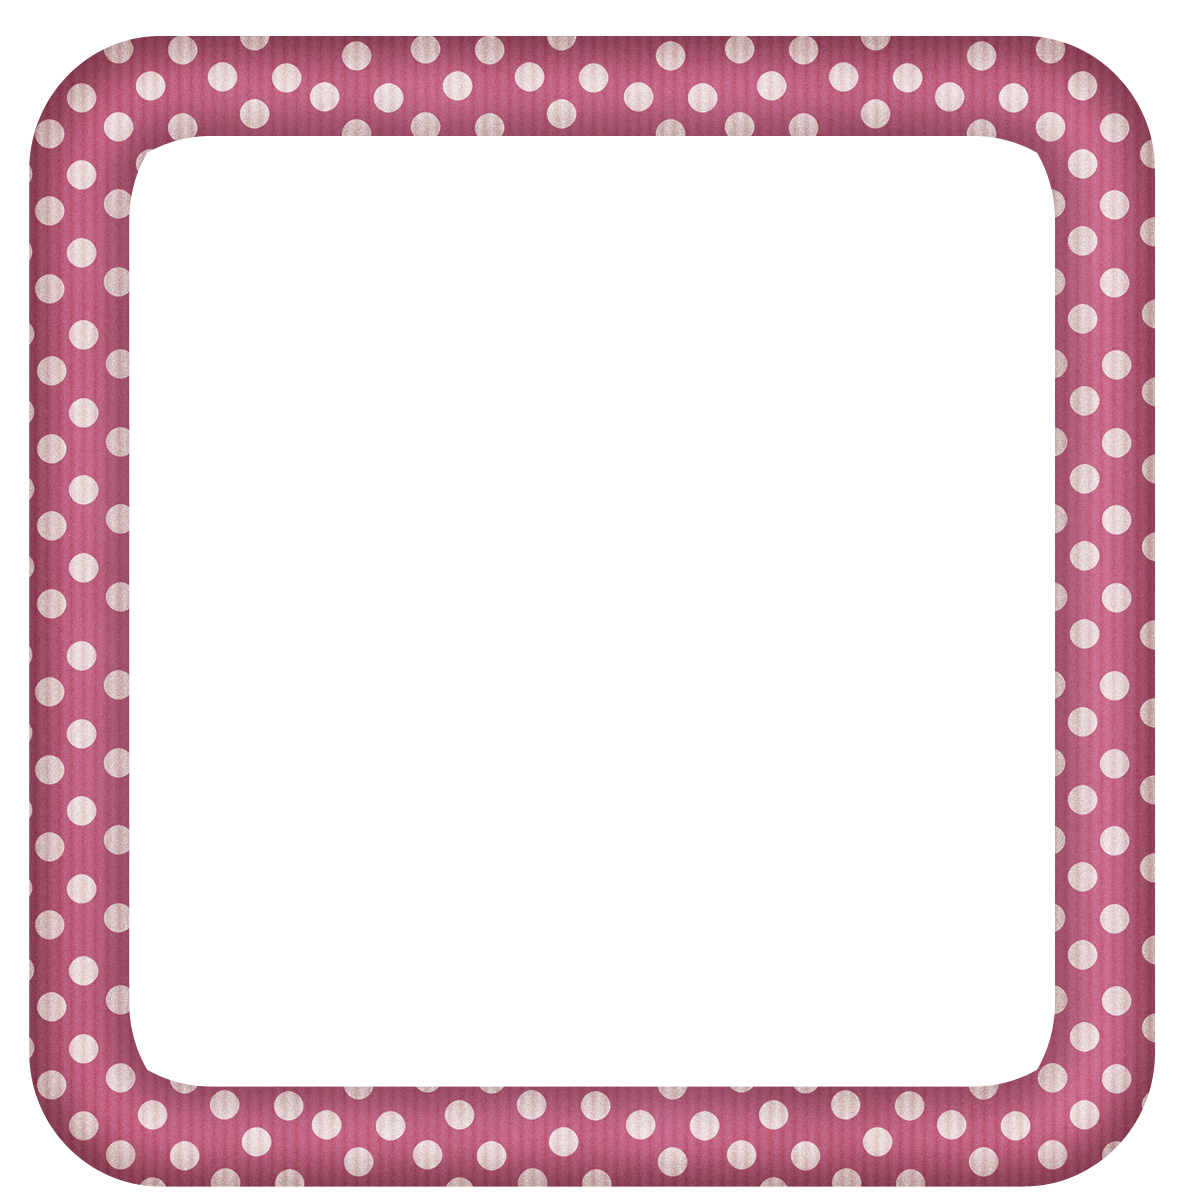 Free Faded Pink Polka Square Digi Scrapbook Frame